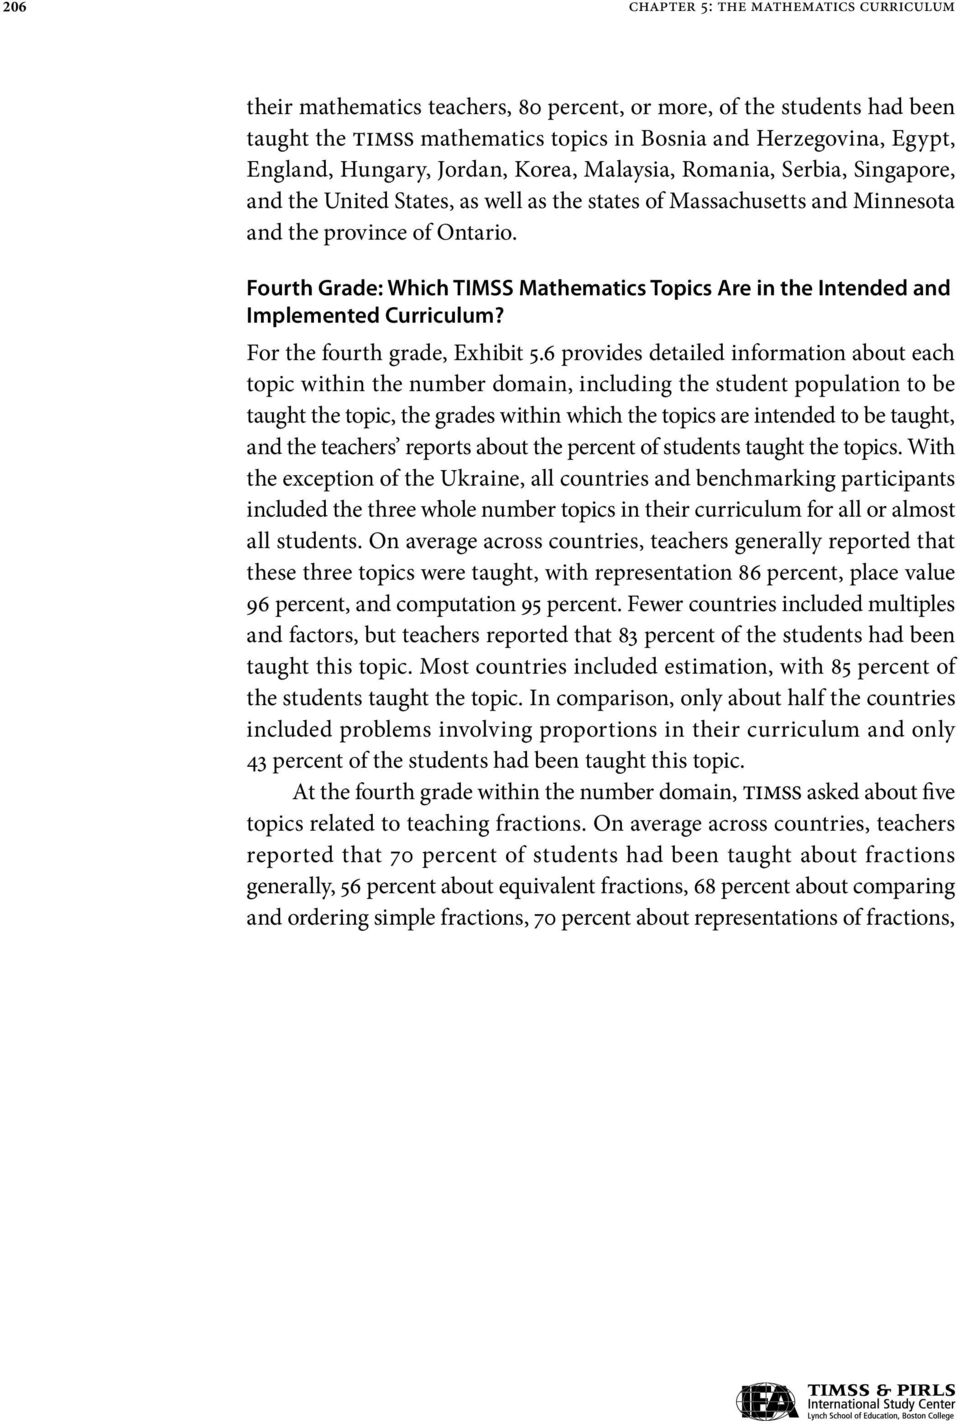 Fourth Grade: Which TIMSS Mathematics Topics Are in the Intended and Implemented Curriculum? For the fourth, Exhibit 5.